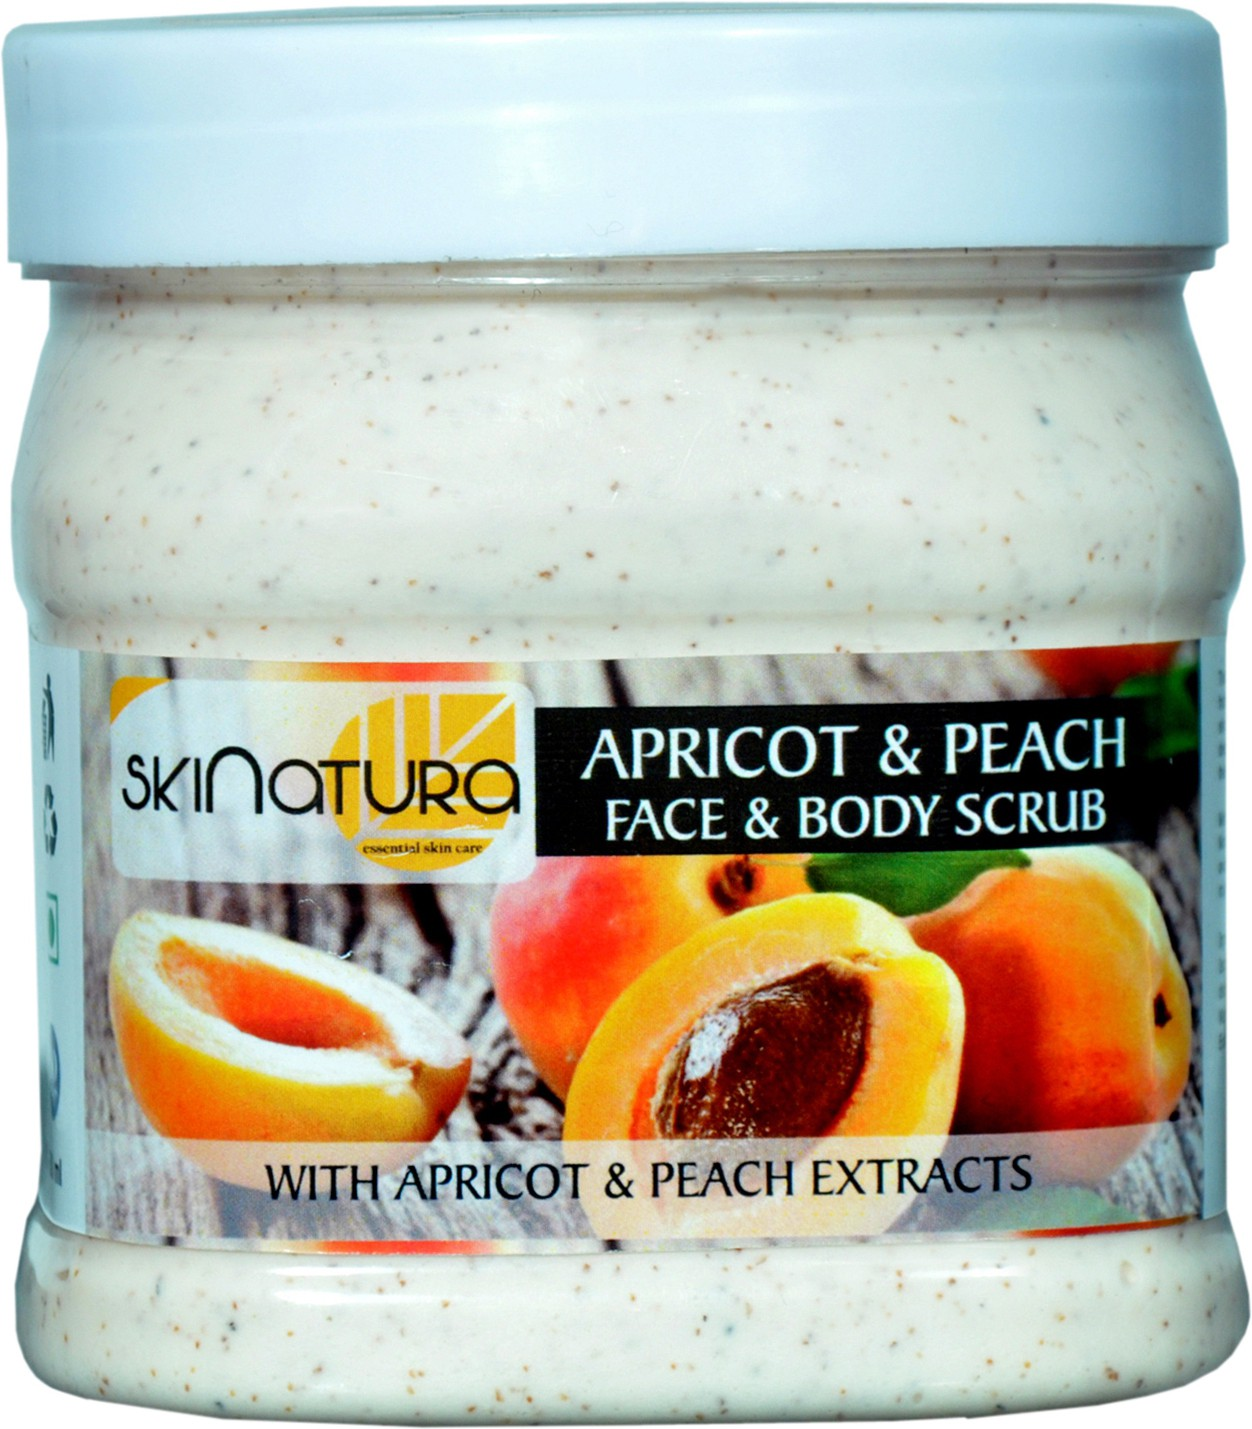 Skinatura apricot & peach face & body cream scrub Scrub(500 ml)